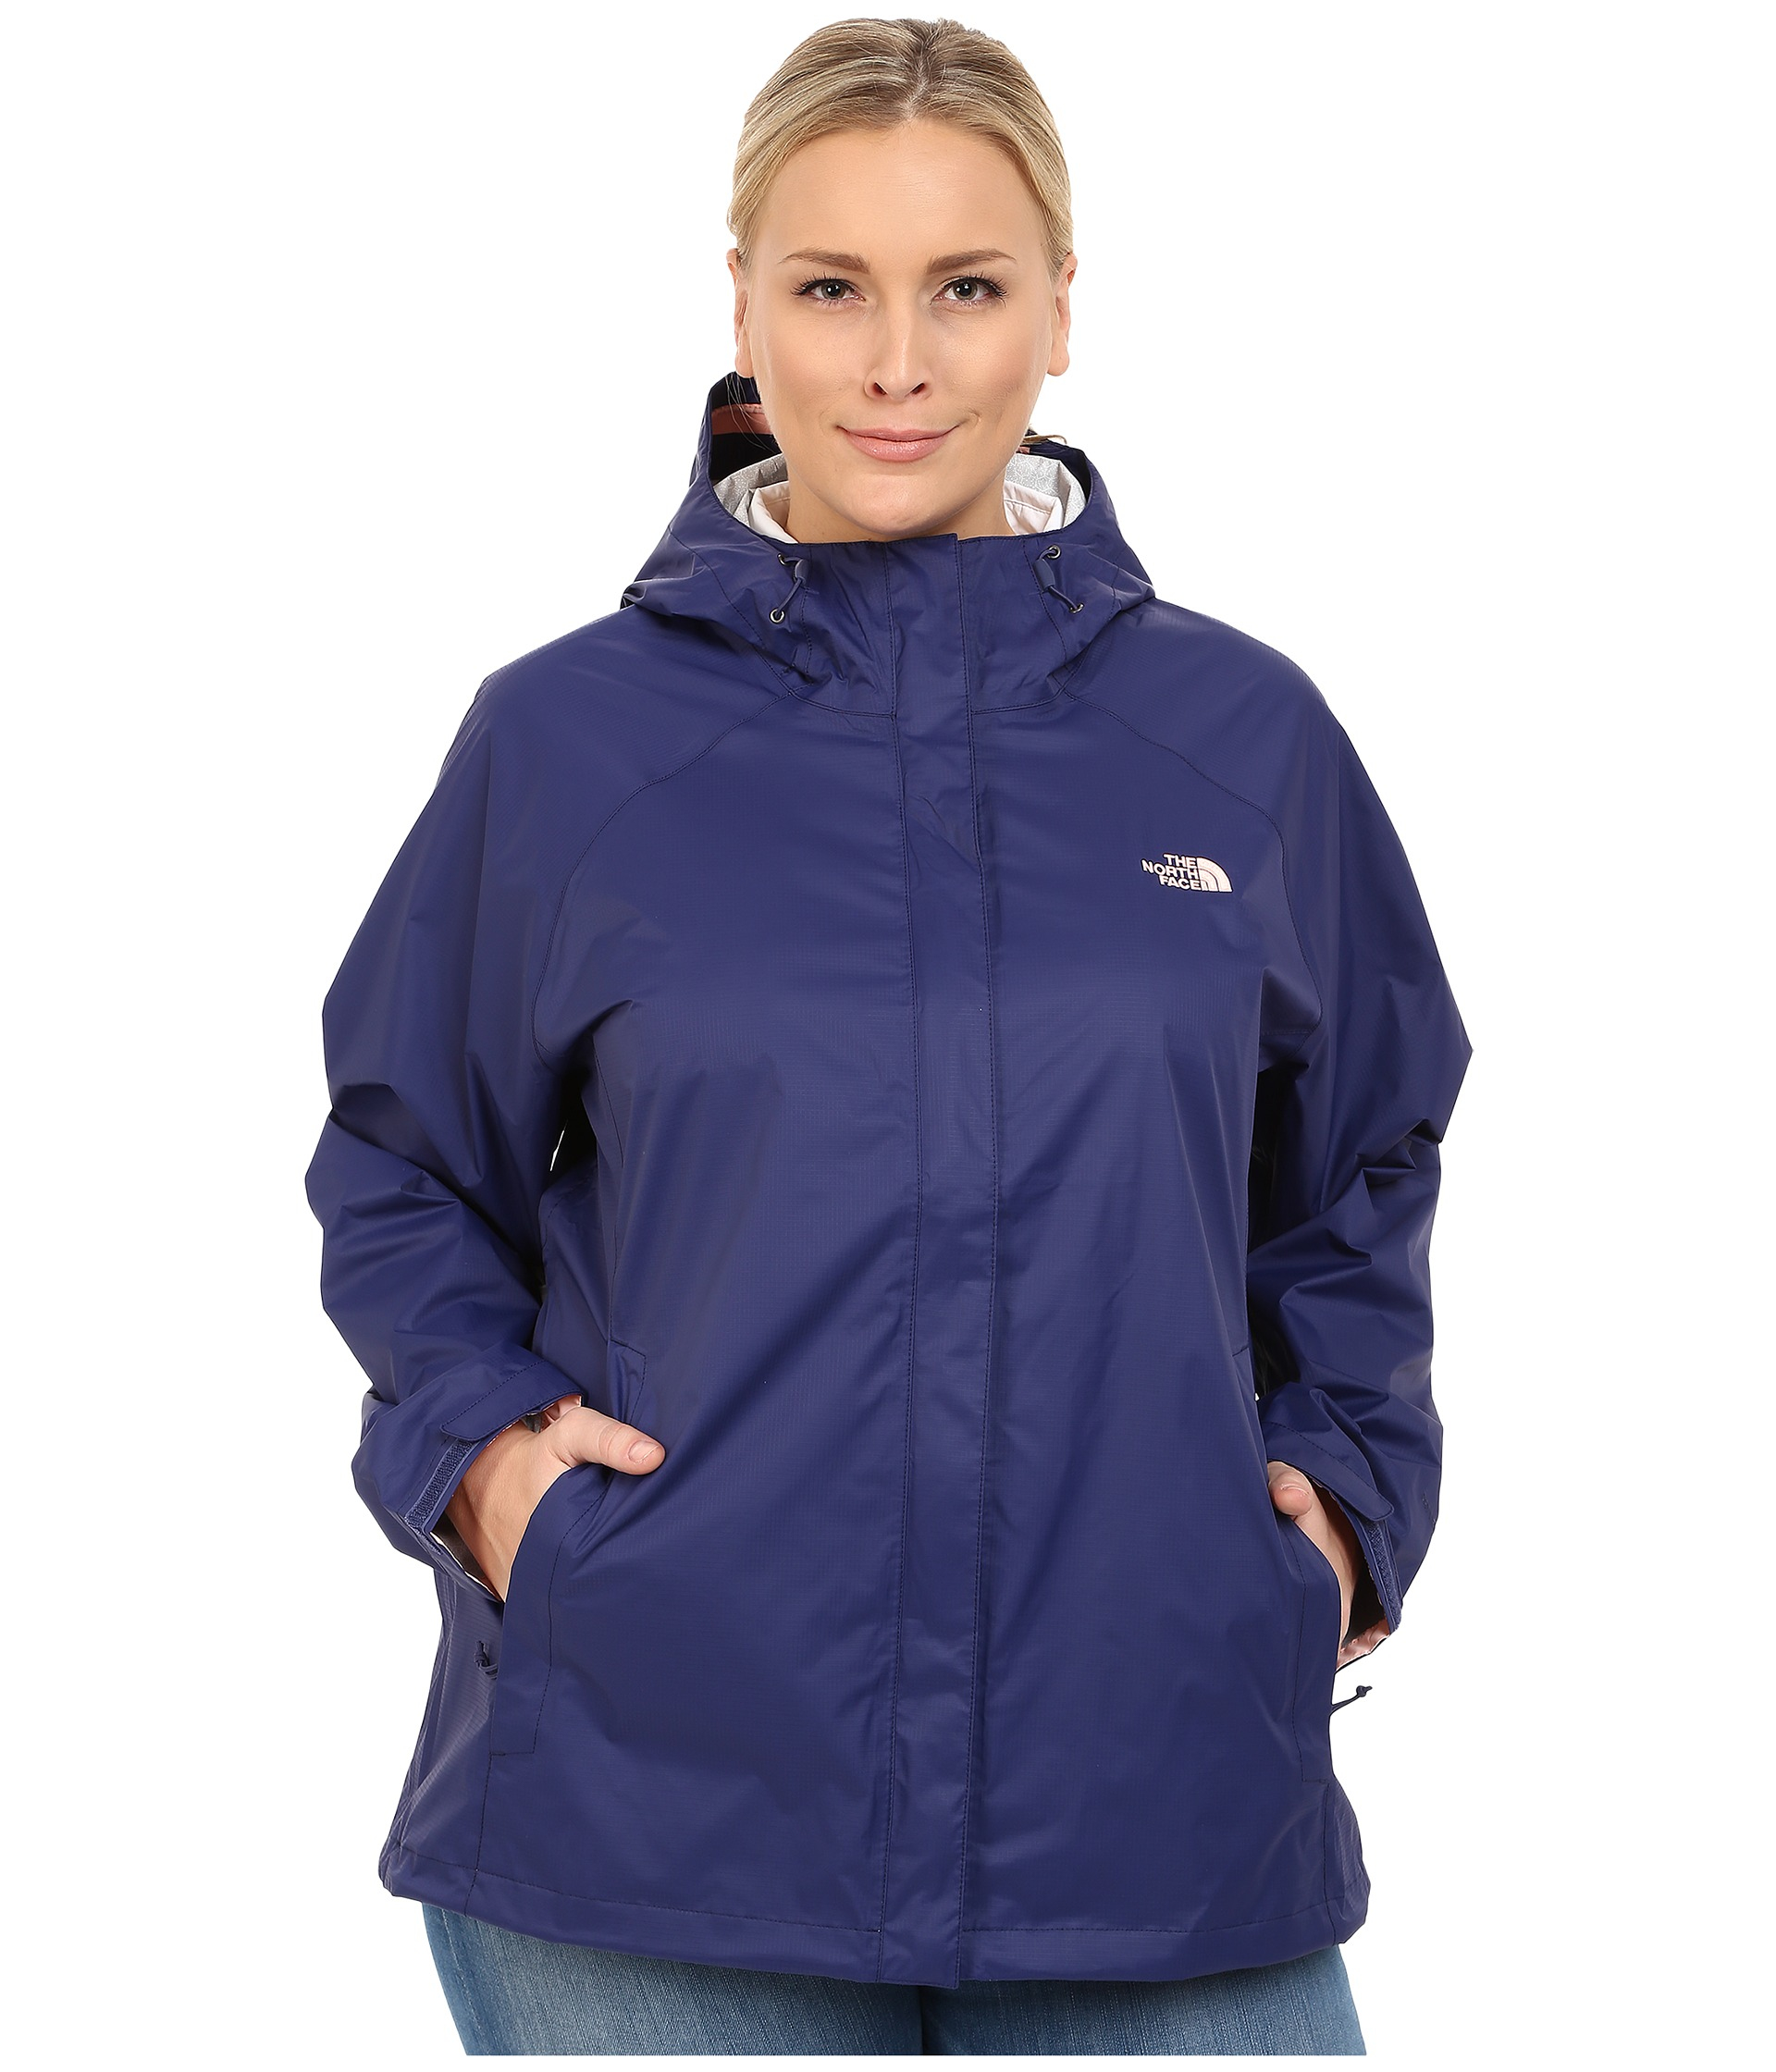 3986eca39128 ... purchase lyst the north face venture jacket in blue d9b5e 31784